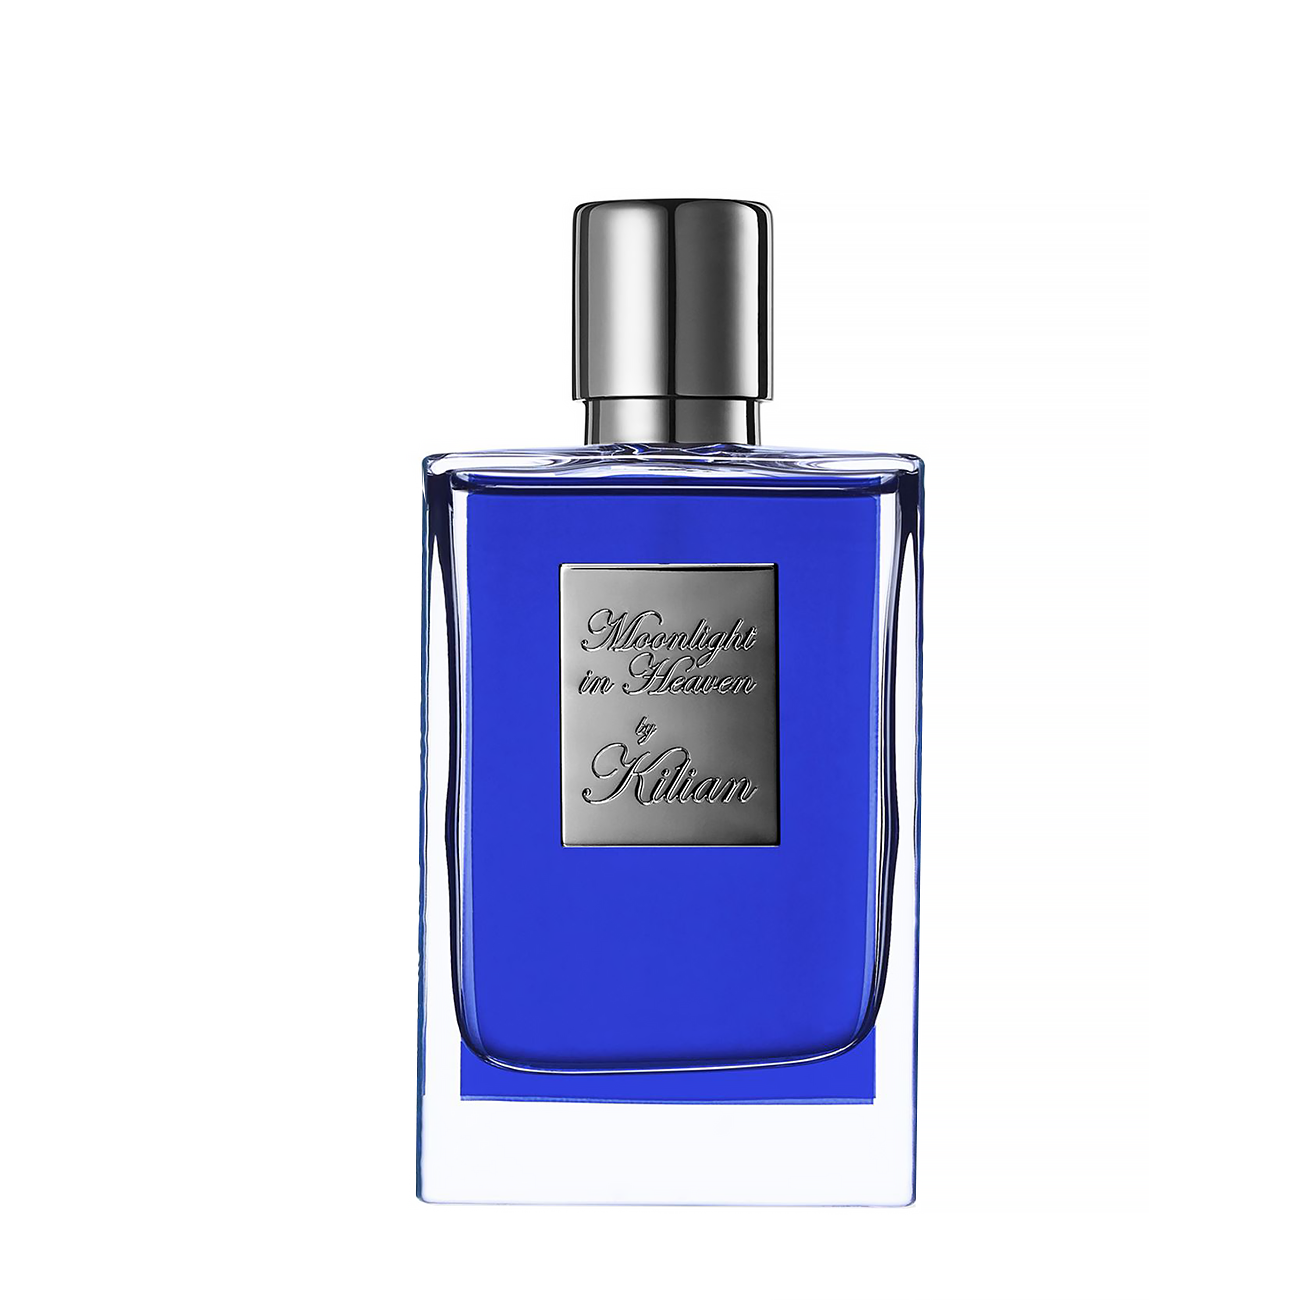 MOONLIGHT IN HEAVEN WITHOUT CLUTCH 50ml imagine